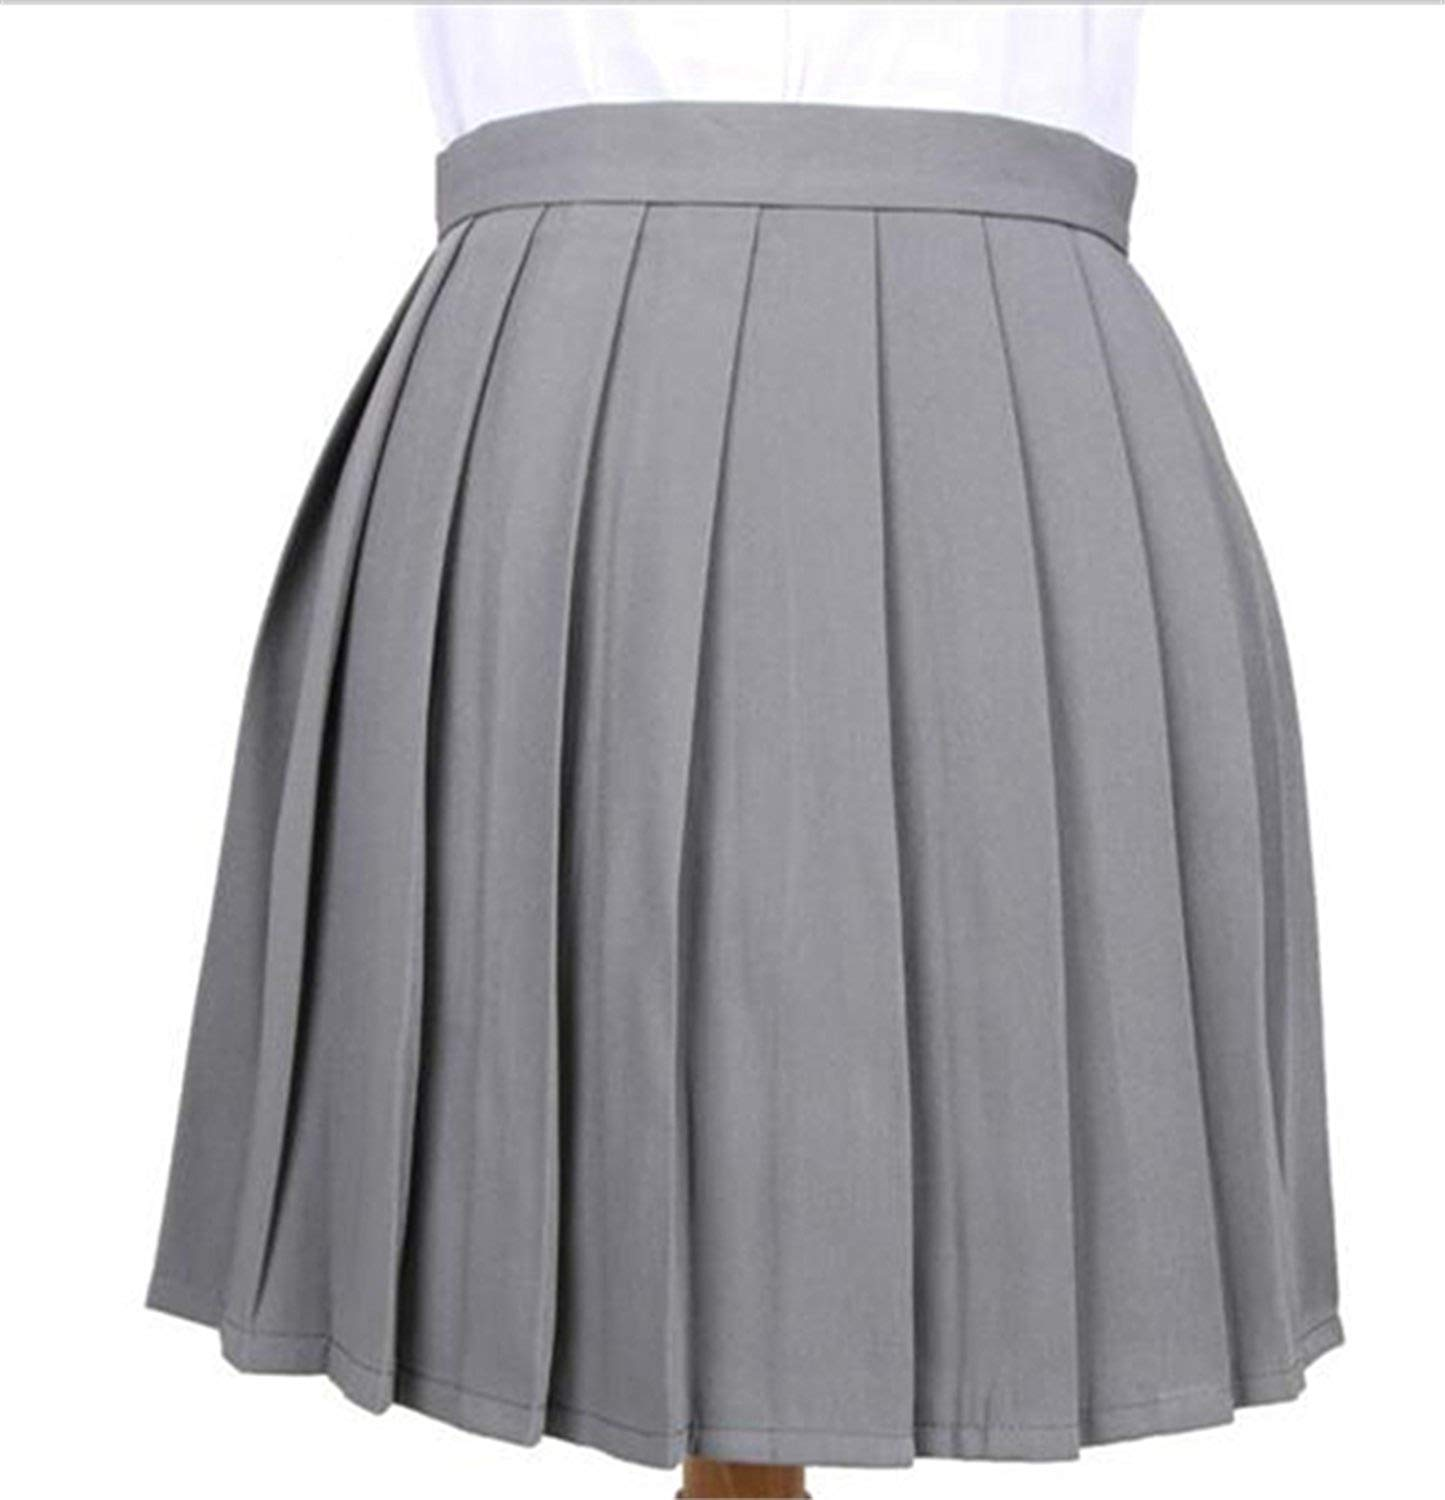 02f9dc735 Get Quotations · Stephomcook High Waist Pleated Skirt Anime School Uniform  Student Girl Pleated Skirt for Girl